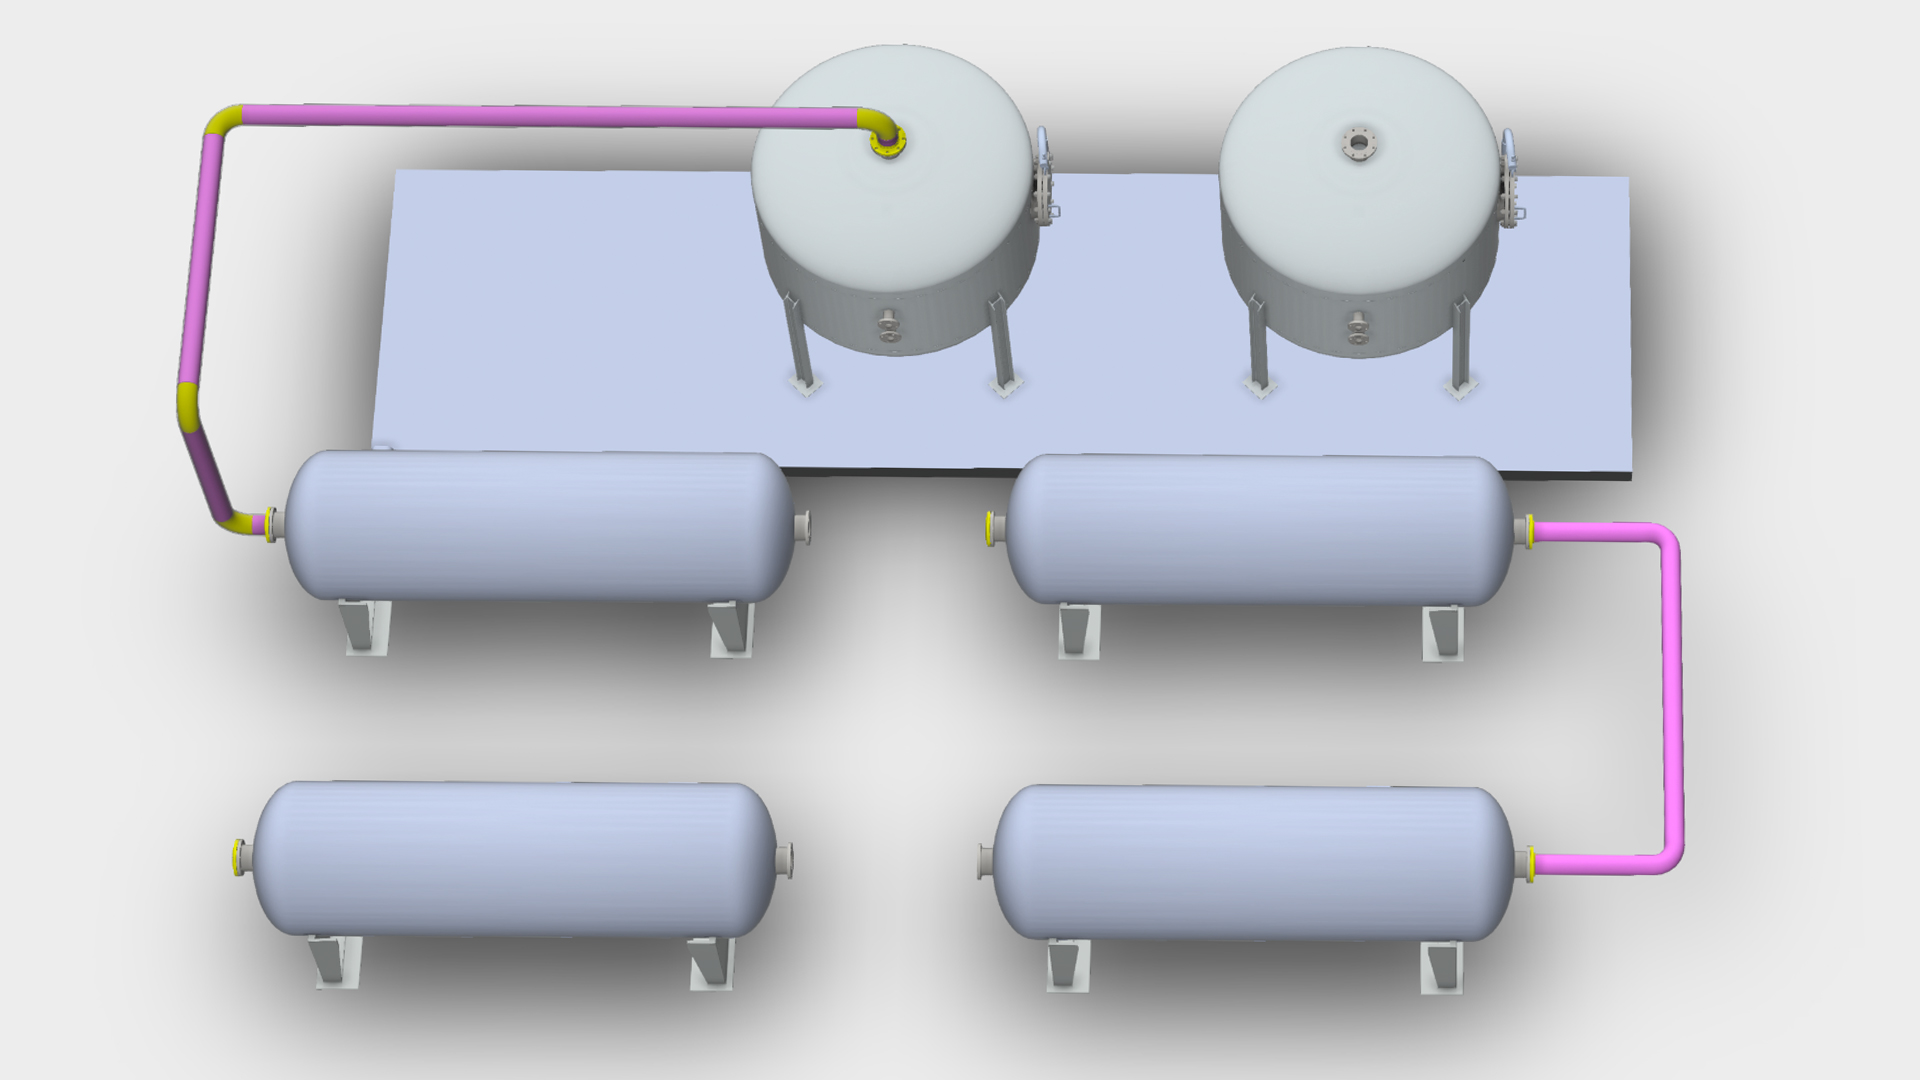 hight resolution of piping layout guideline